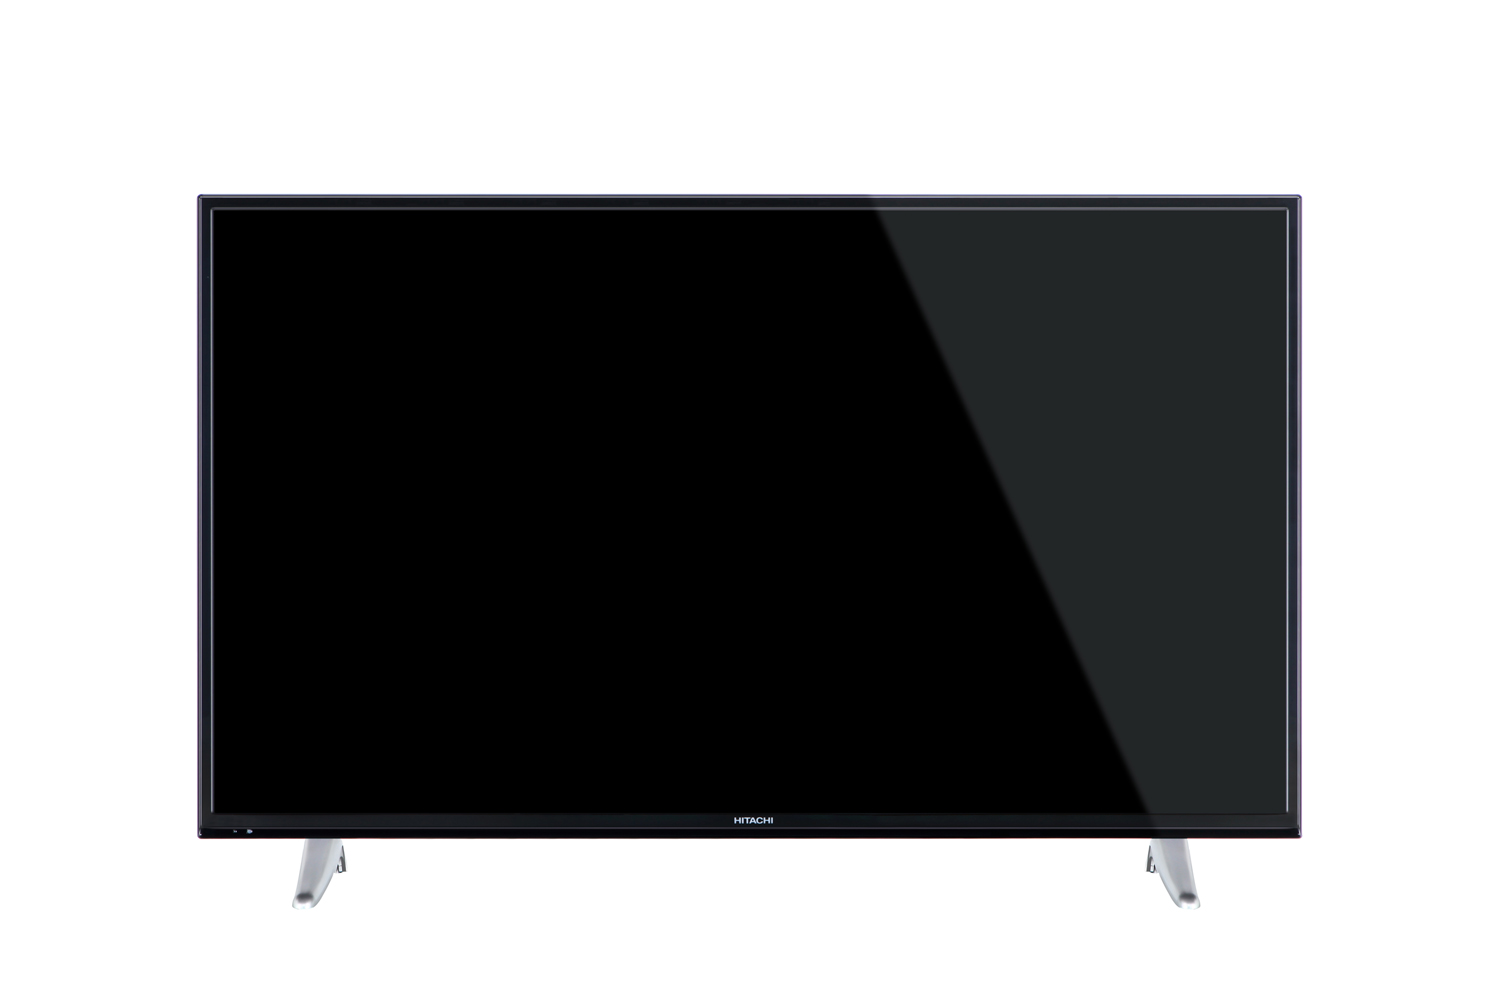 "LED TV 49"" (125cm)/DLED Full HD, SMART + intgr. WI-FI 49HB6W62"